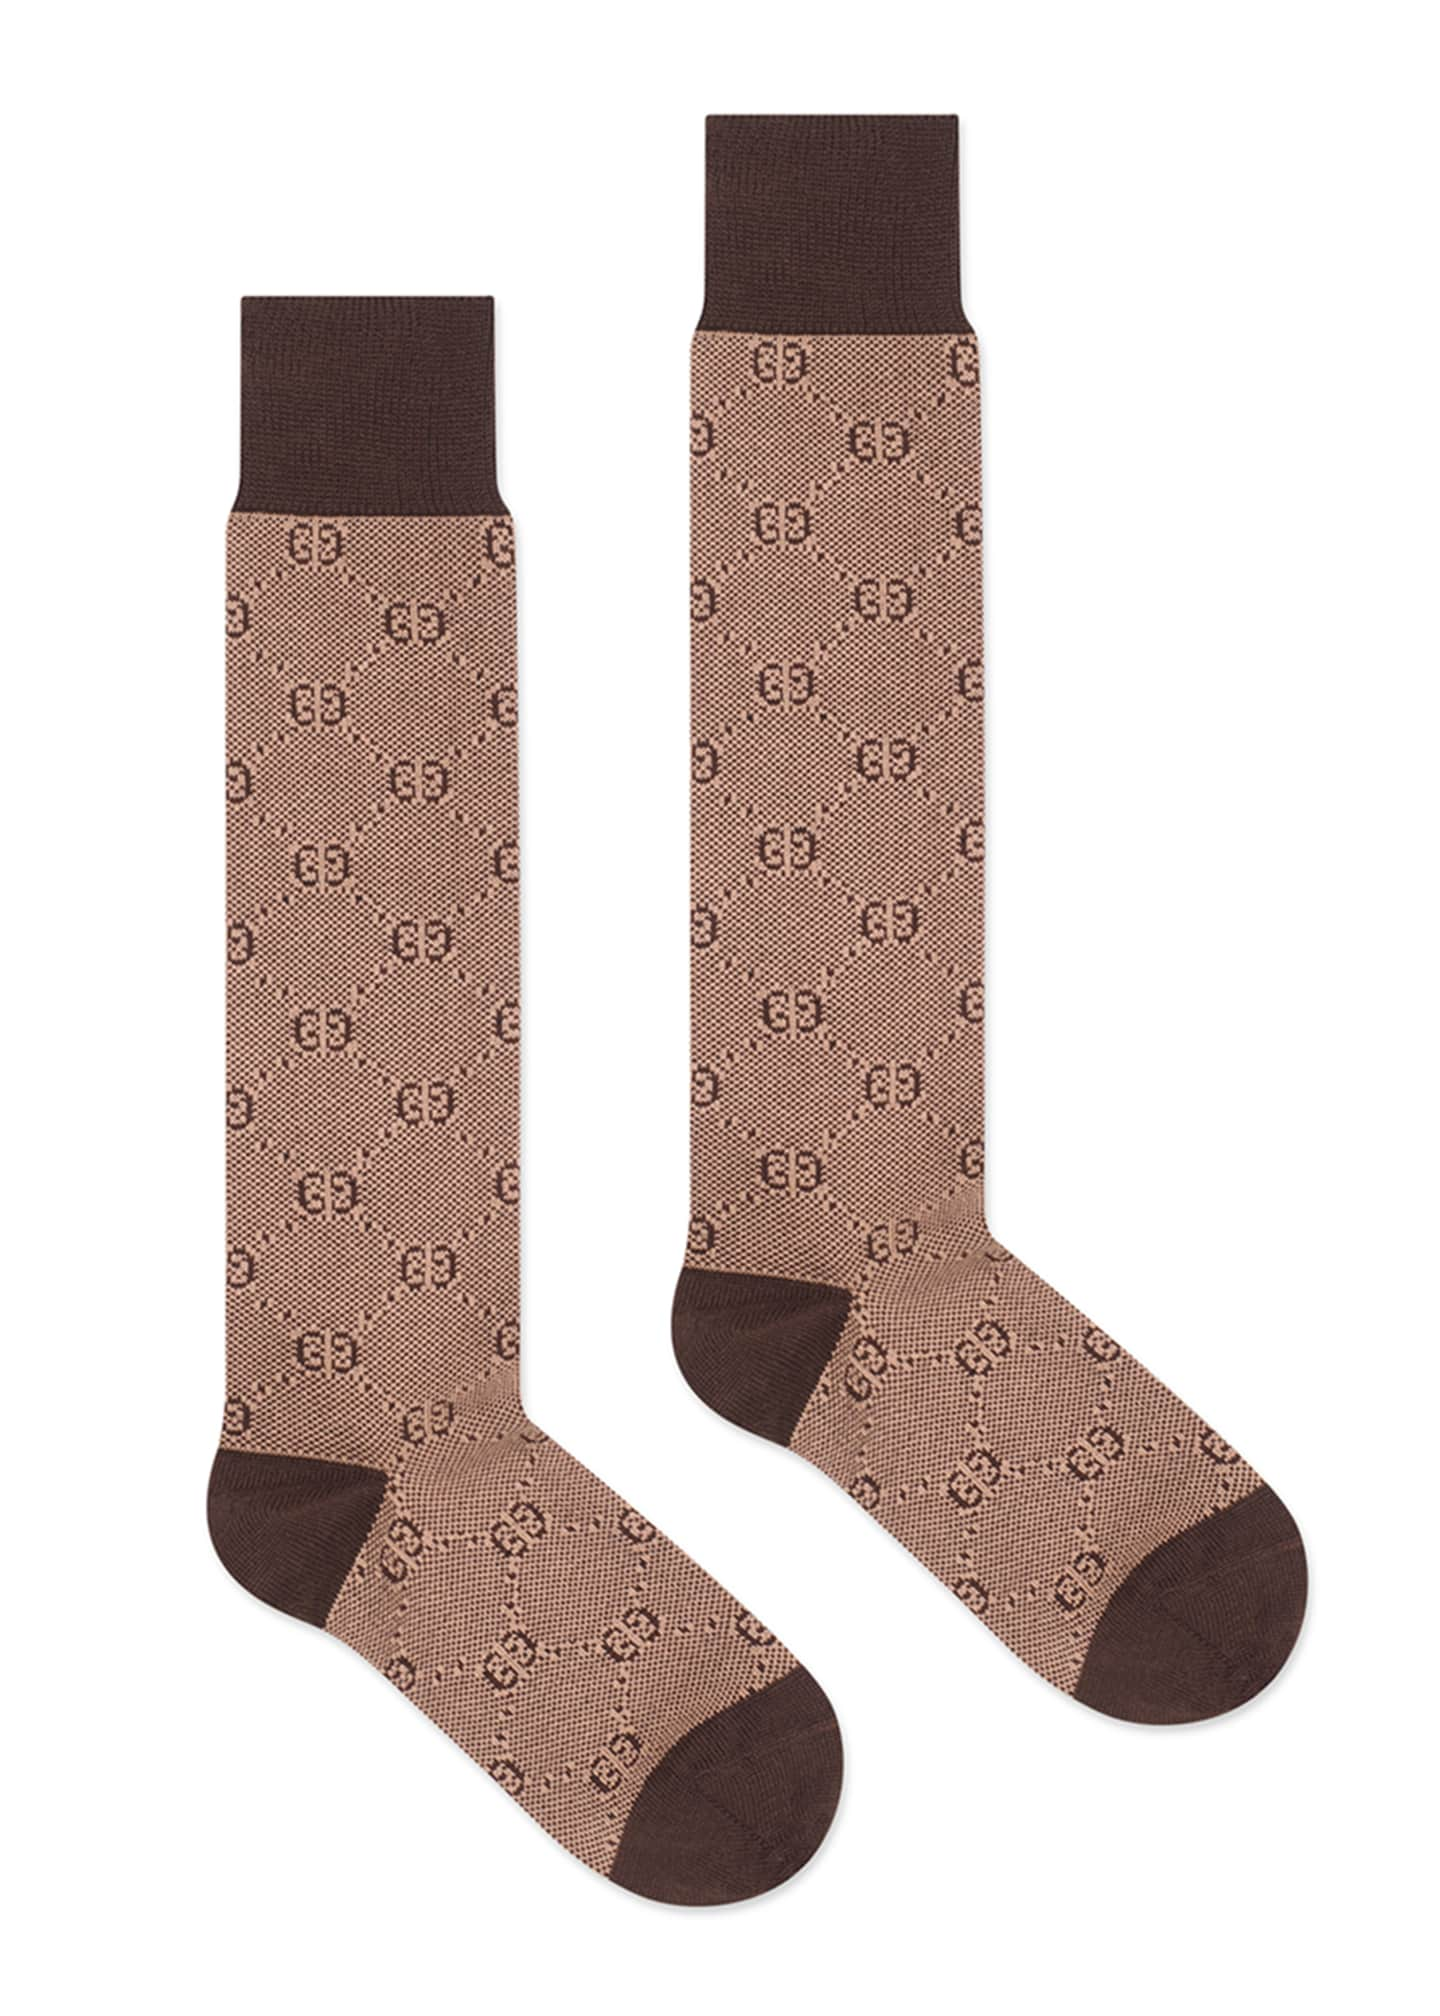 Gucci Men's Tonal GG Cotton/Wool Socks